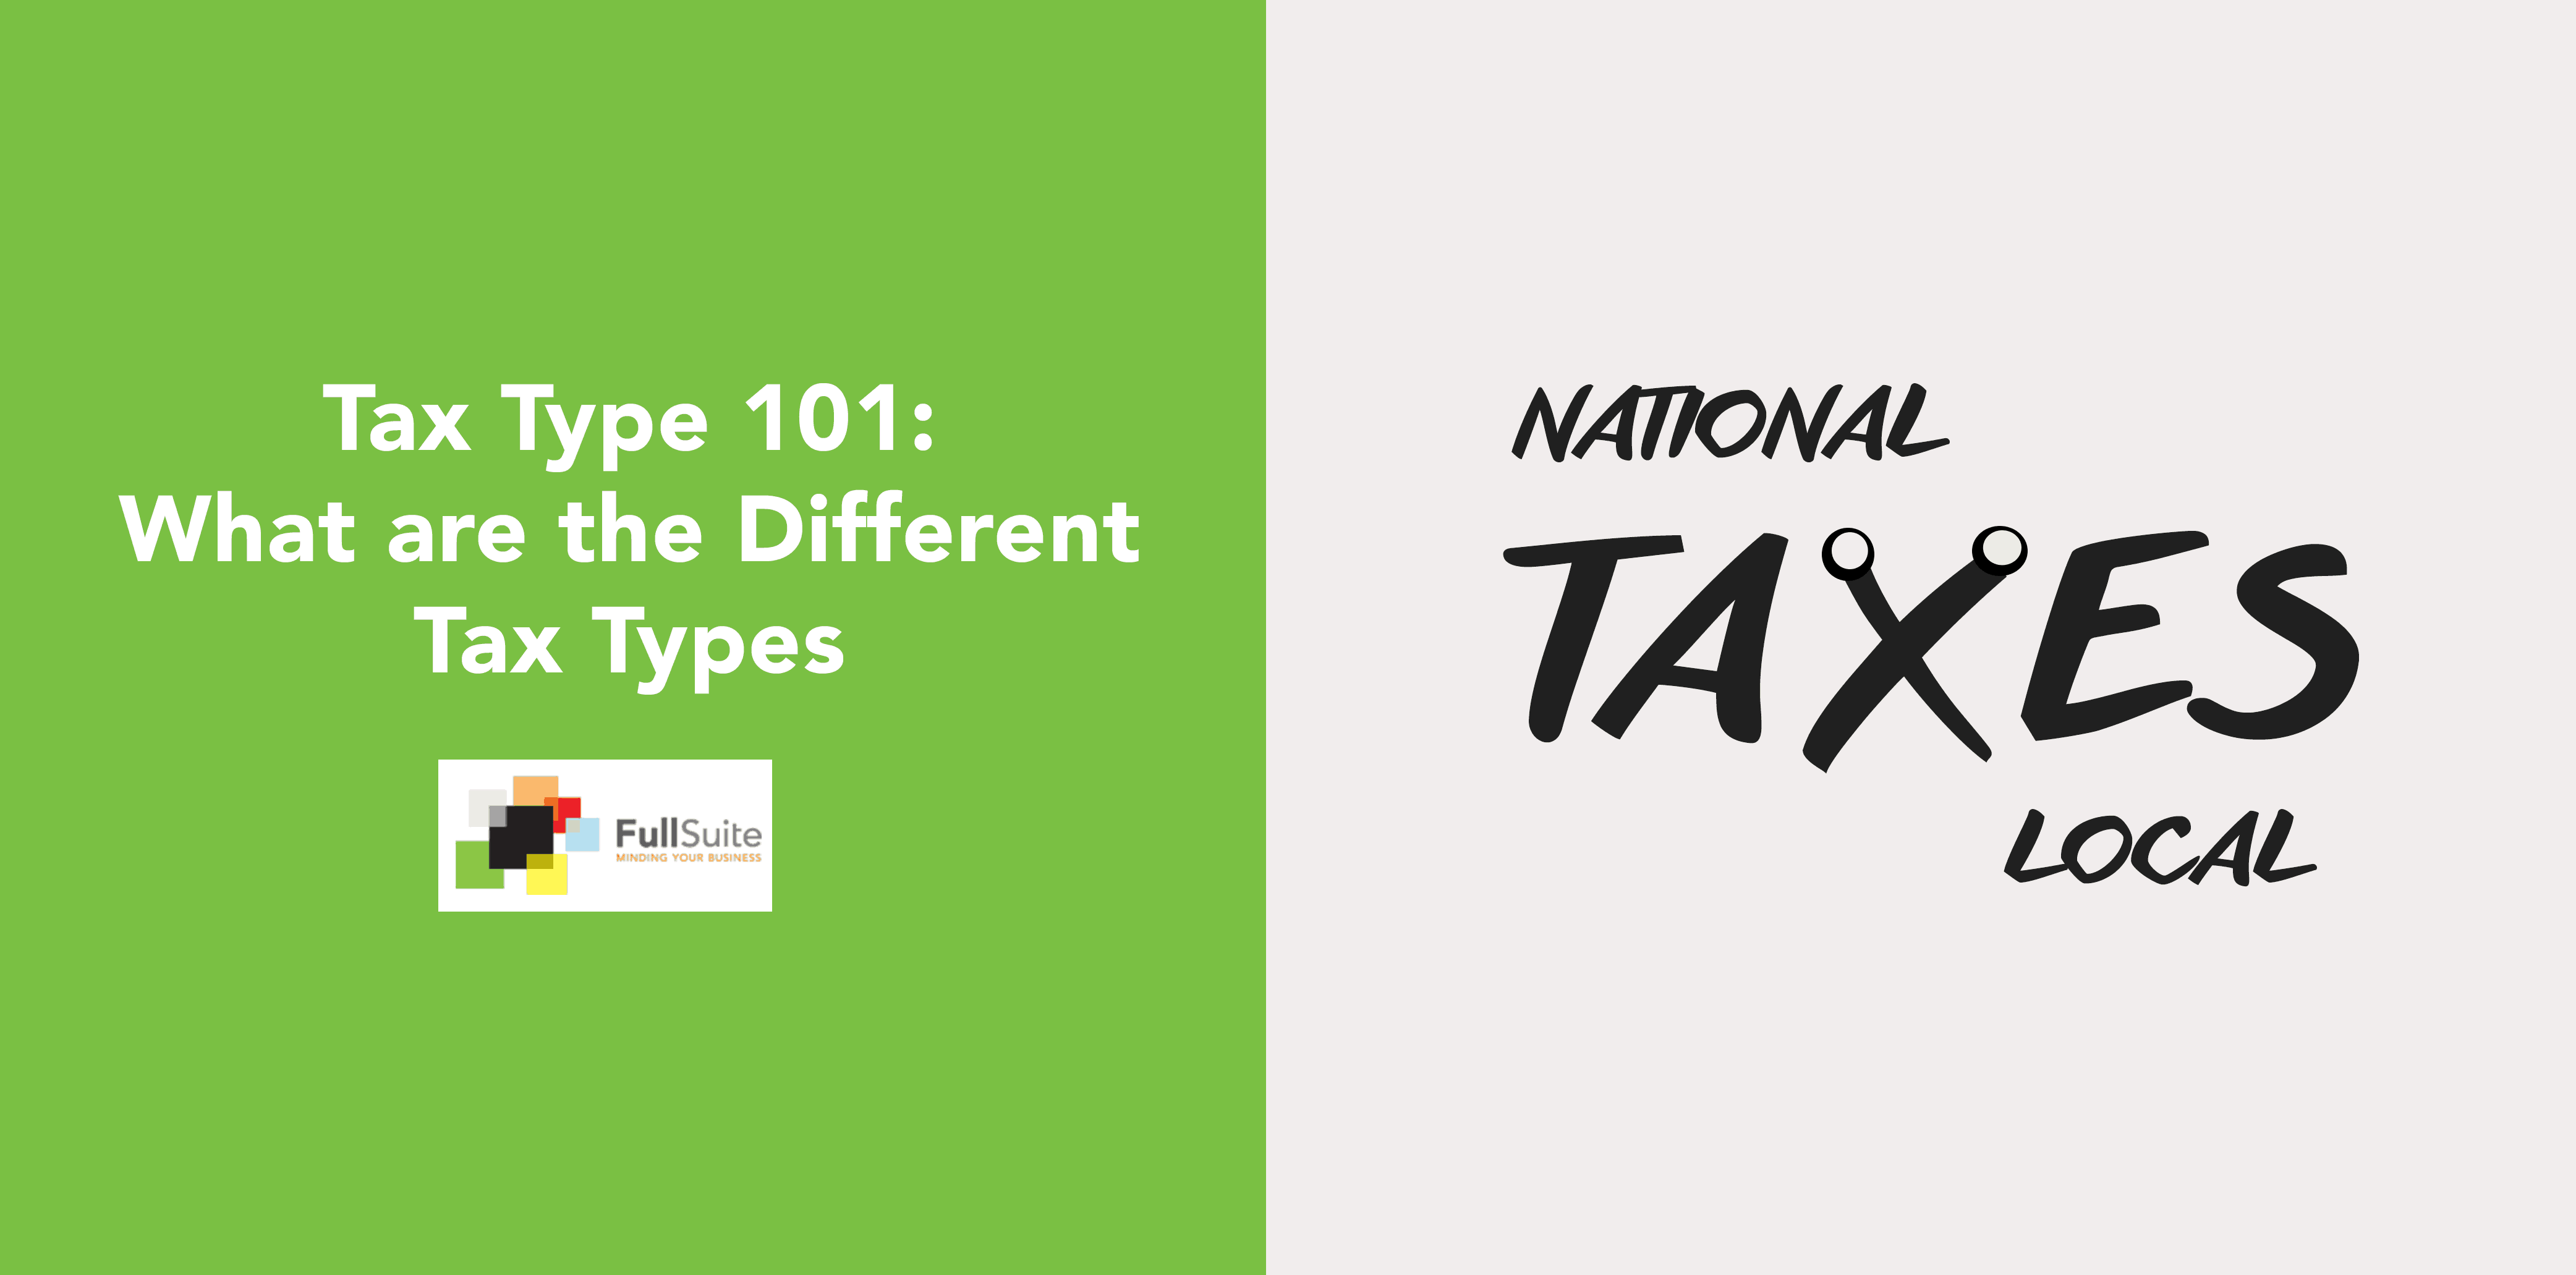 Tax Type 101: What are the Different Tax Types